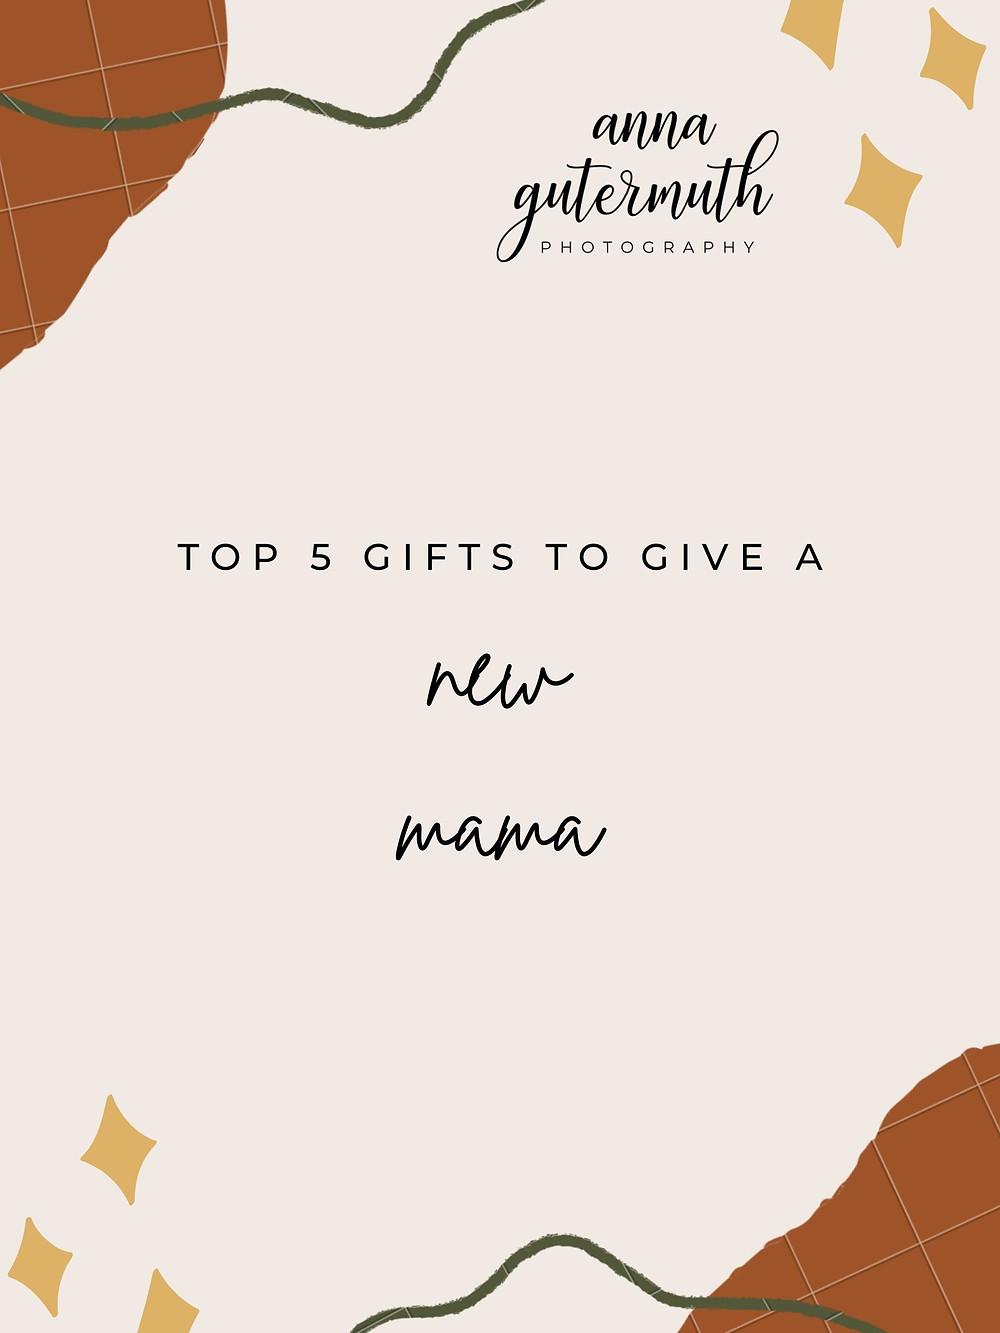 Top 5 Gifts to Give to a New Mama by Anna Gutermuth Photography